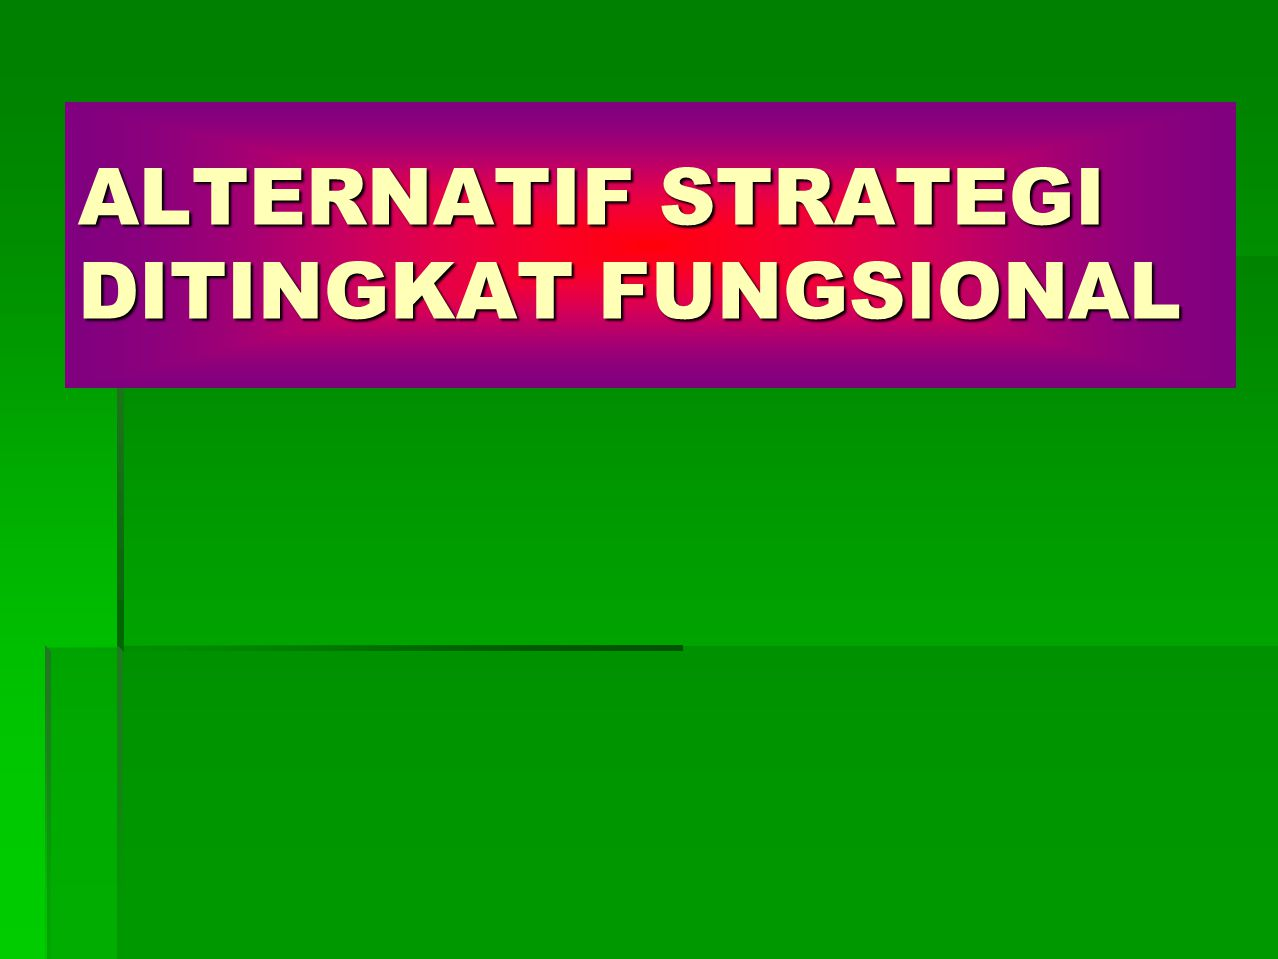 ALTERNATIF STRATEGI DITINGKAT FUNGSIONAL